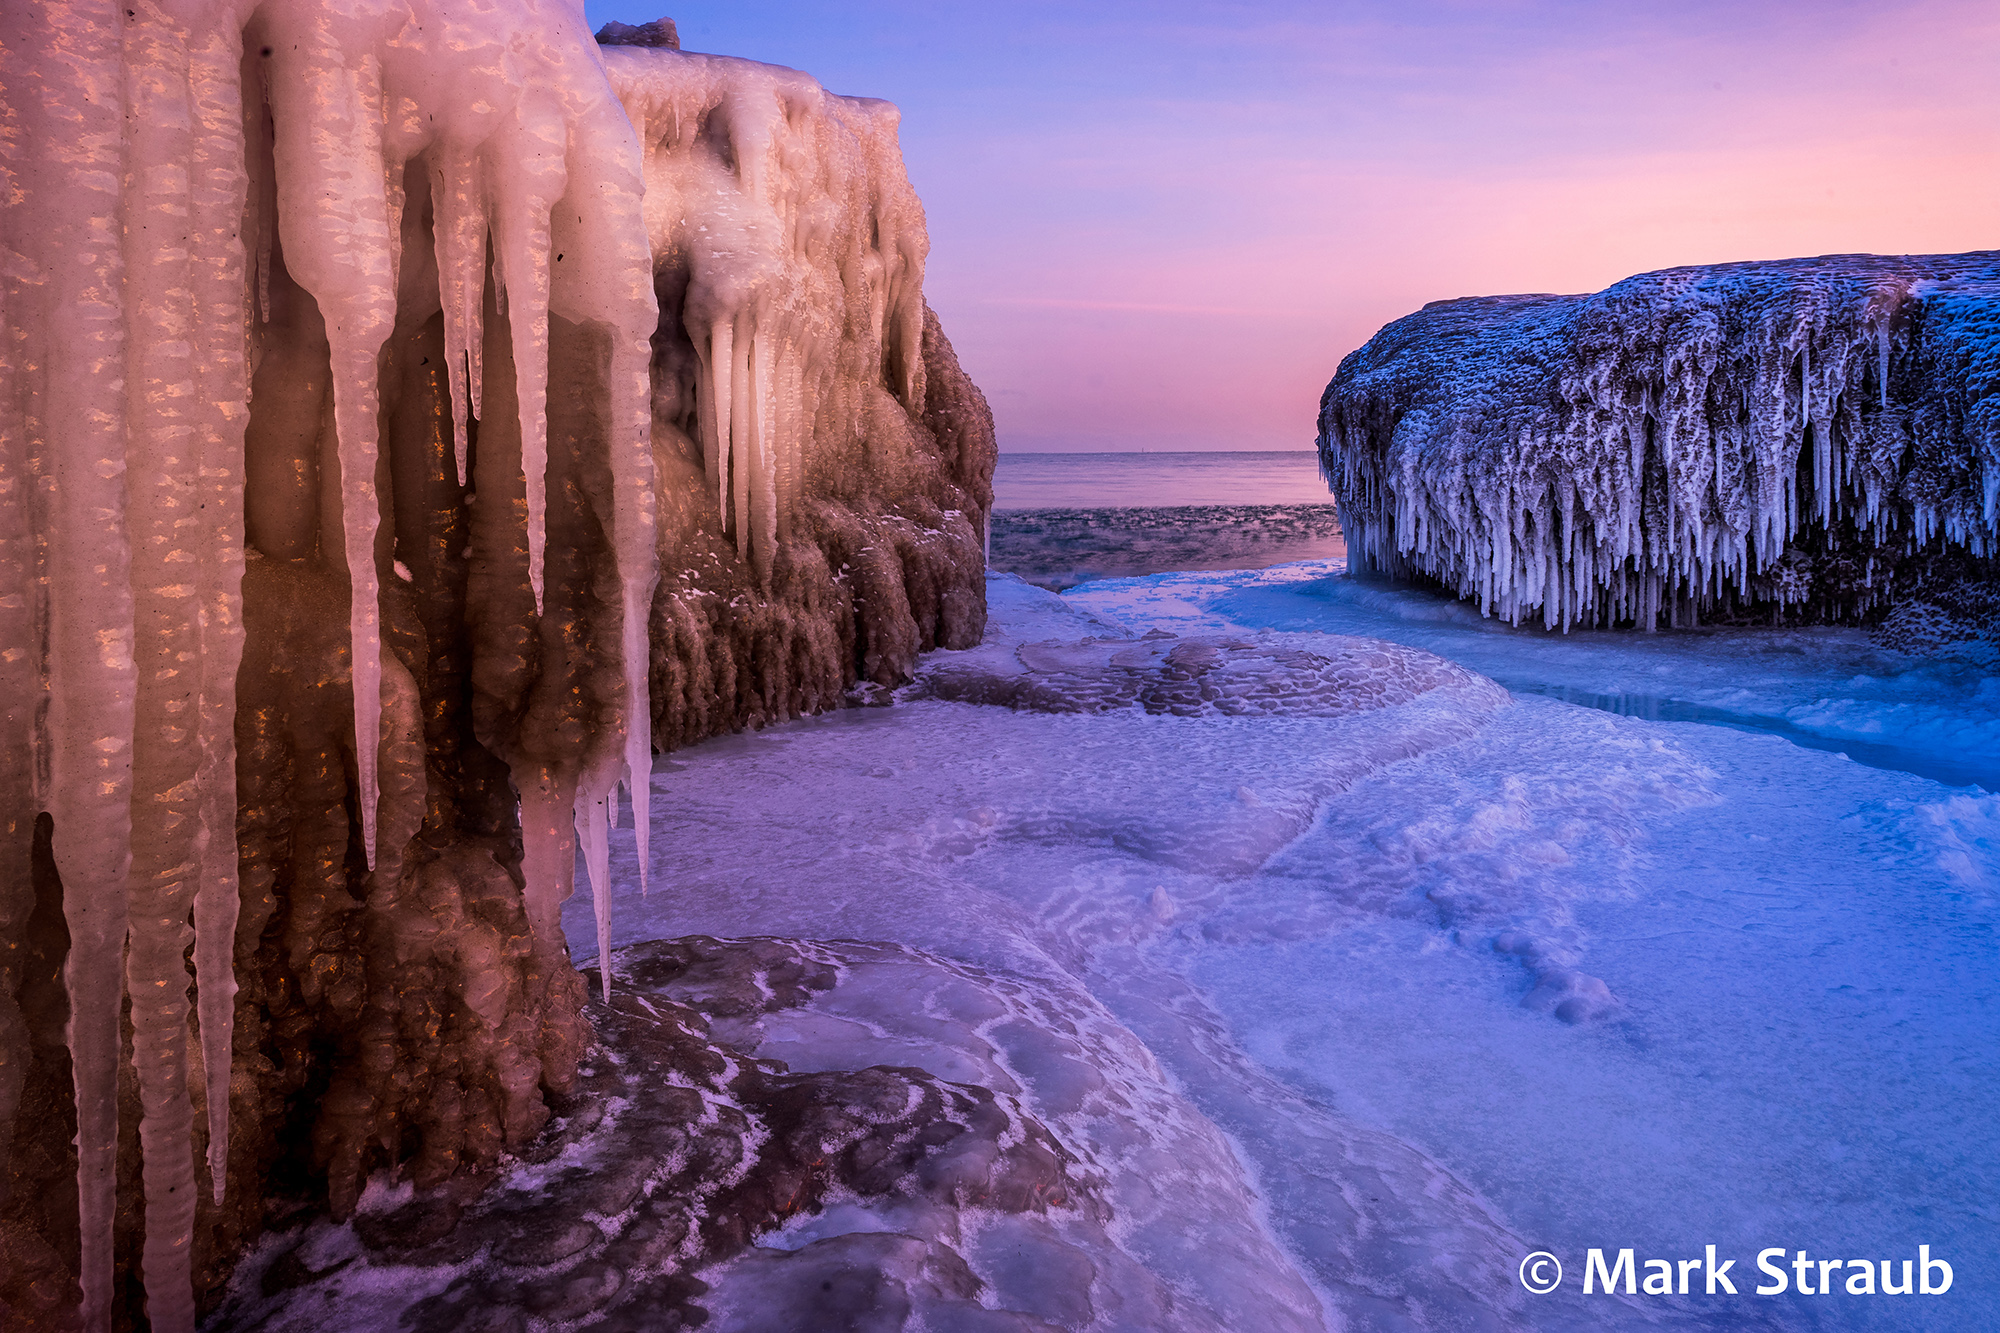 Fire and Ice - Mark Straub